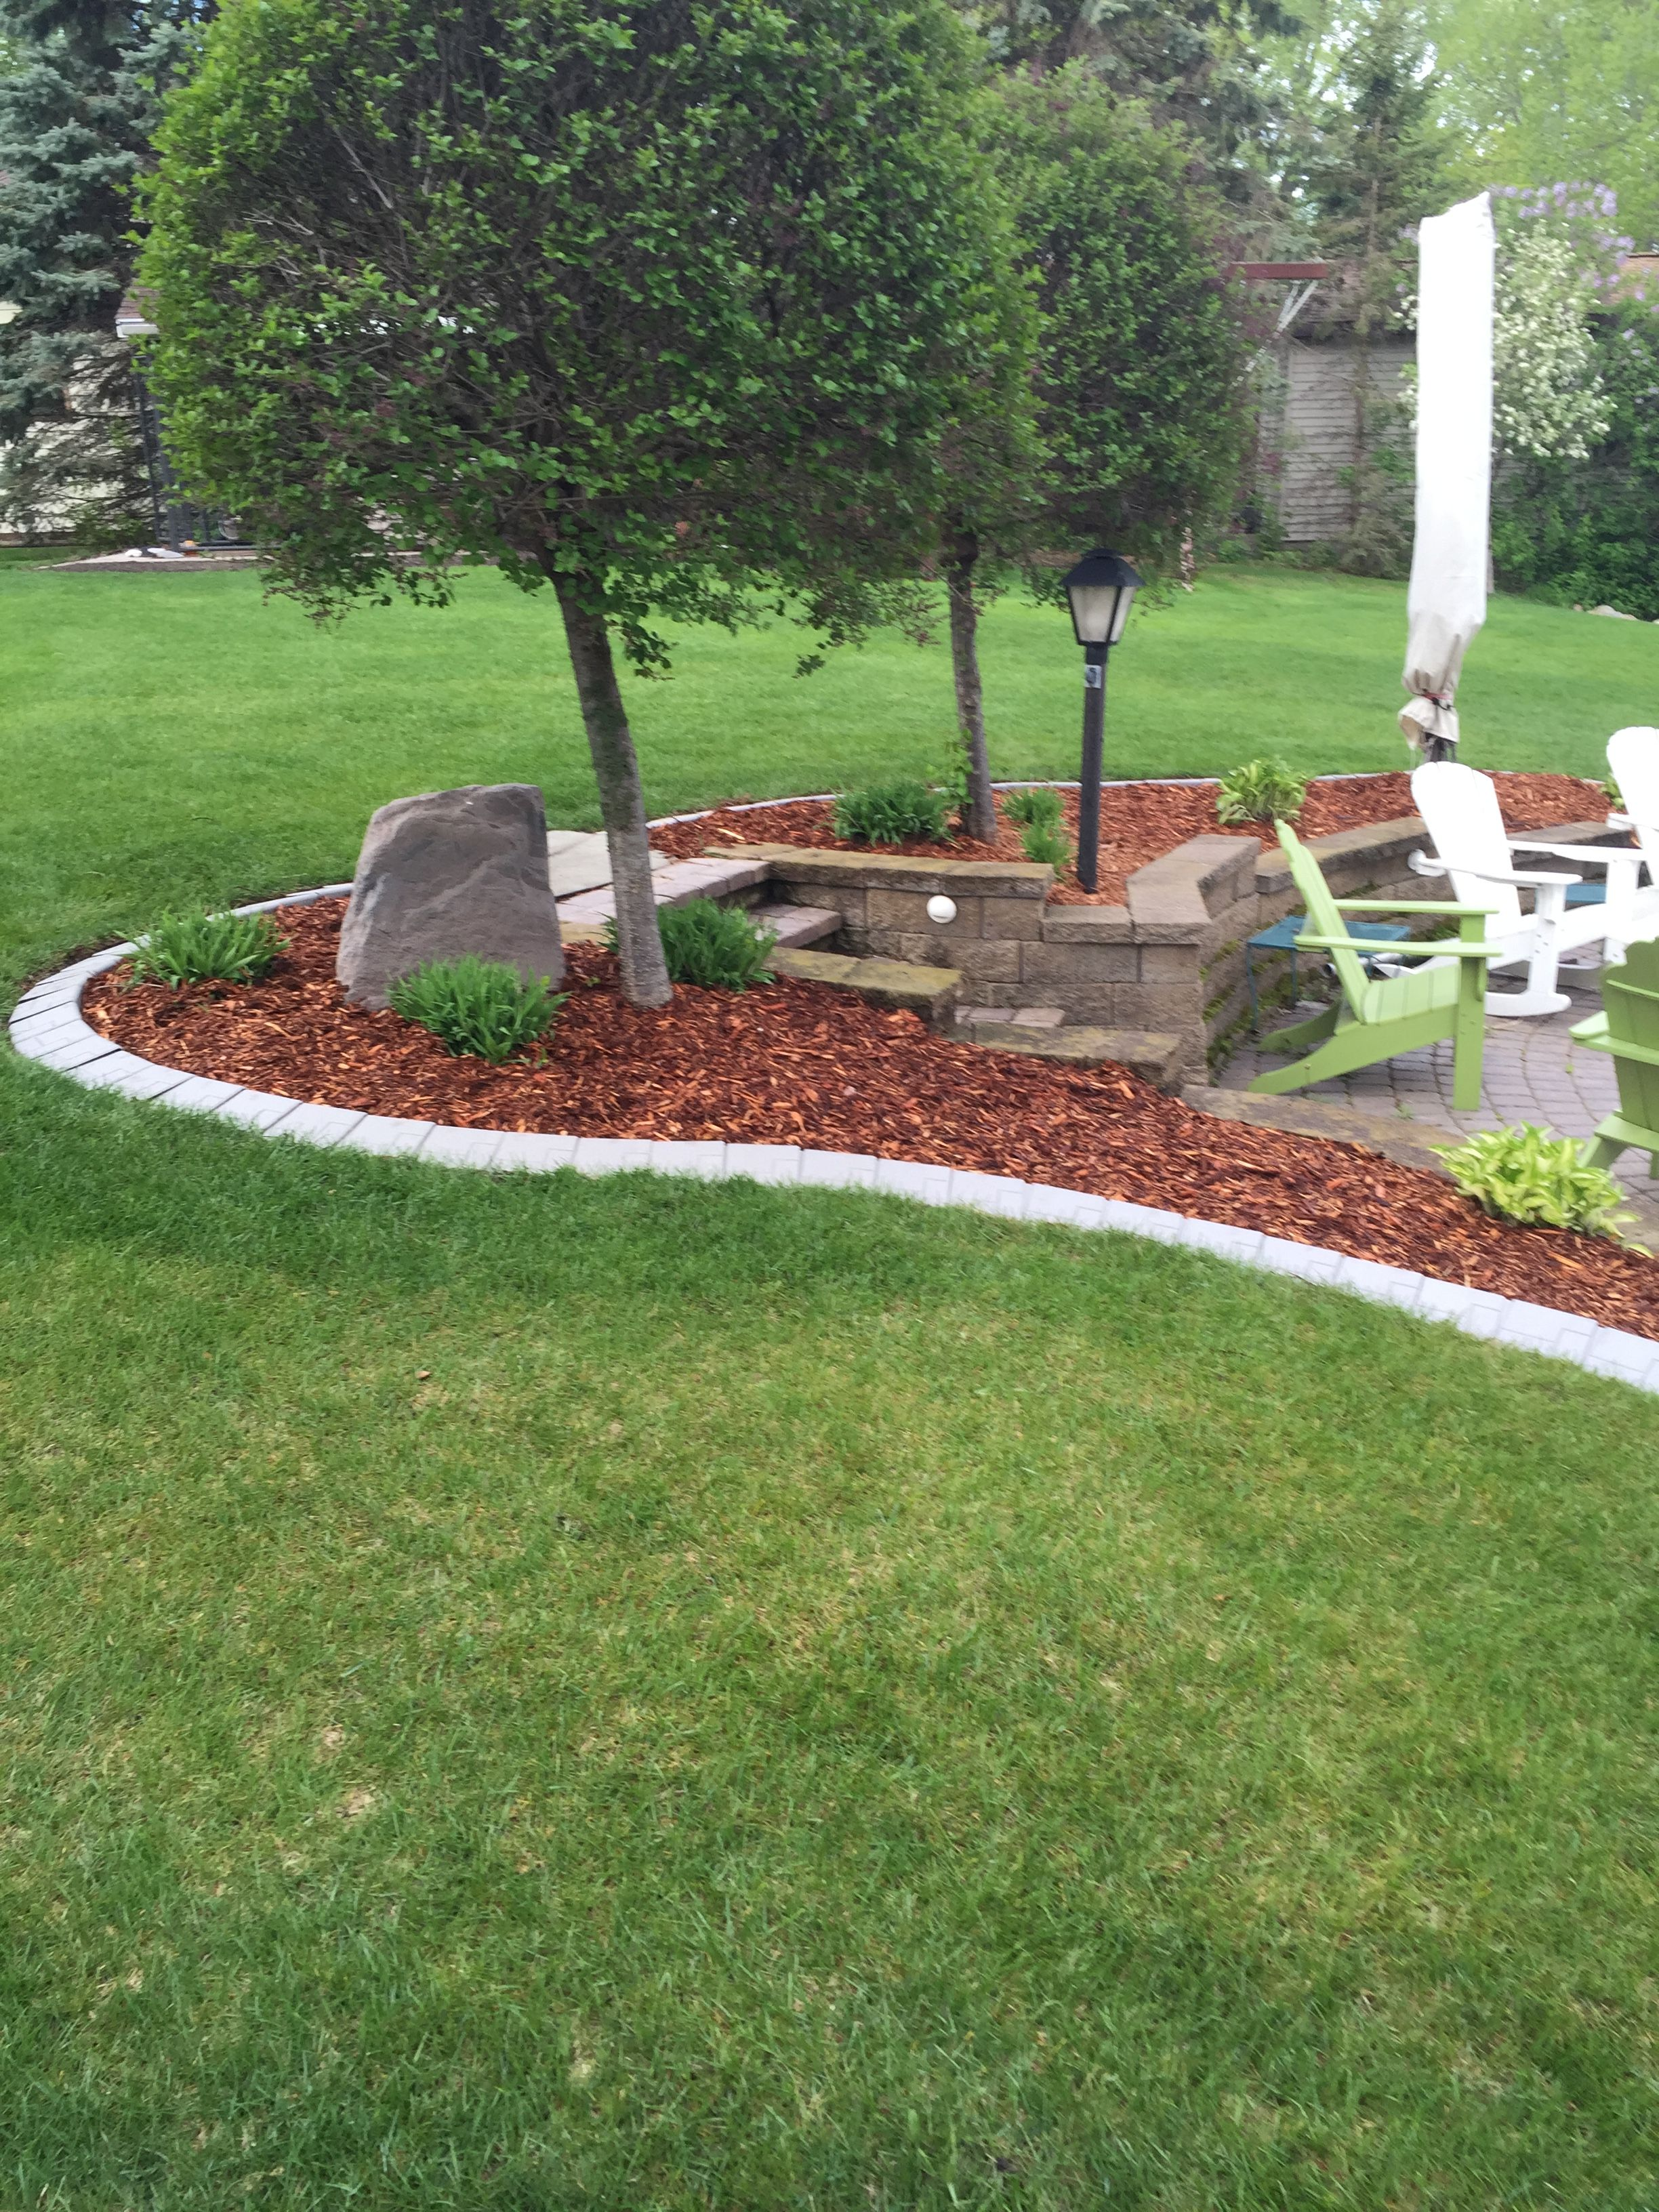 This New Product Gives Your Landscape Beds A Curbed Edge Look Without The Cost And Hle Of Poured Concrete Curb